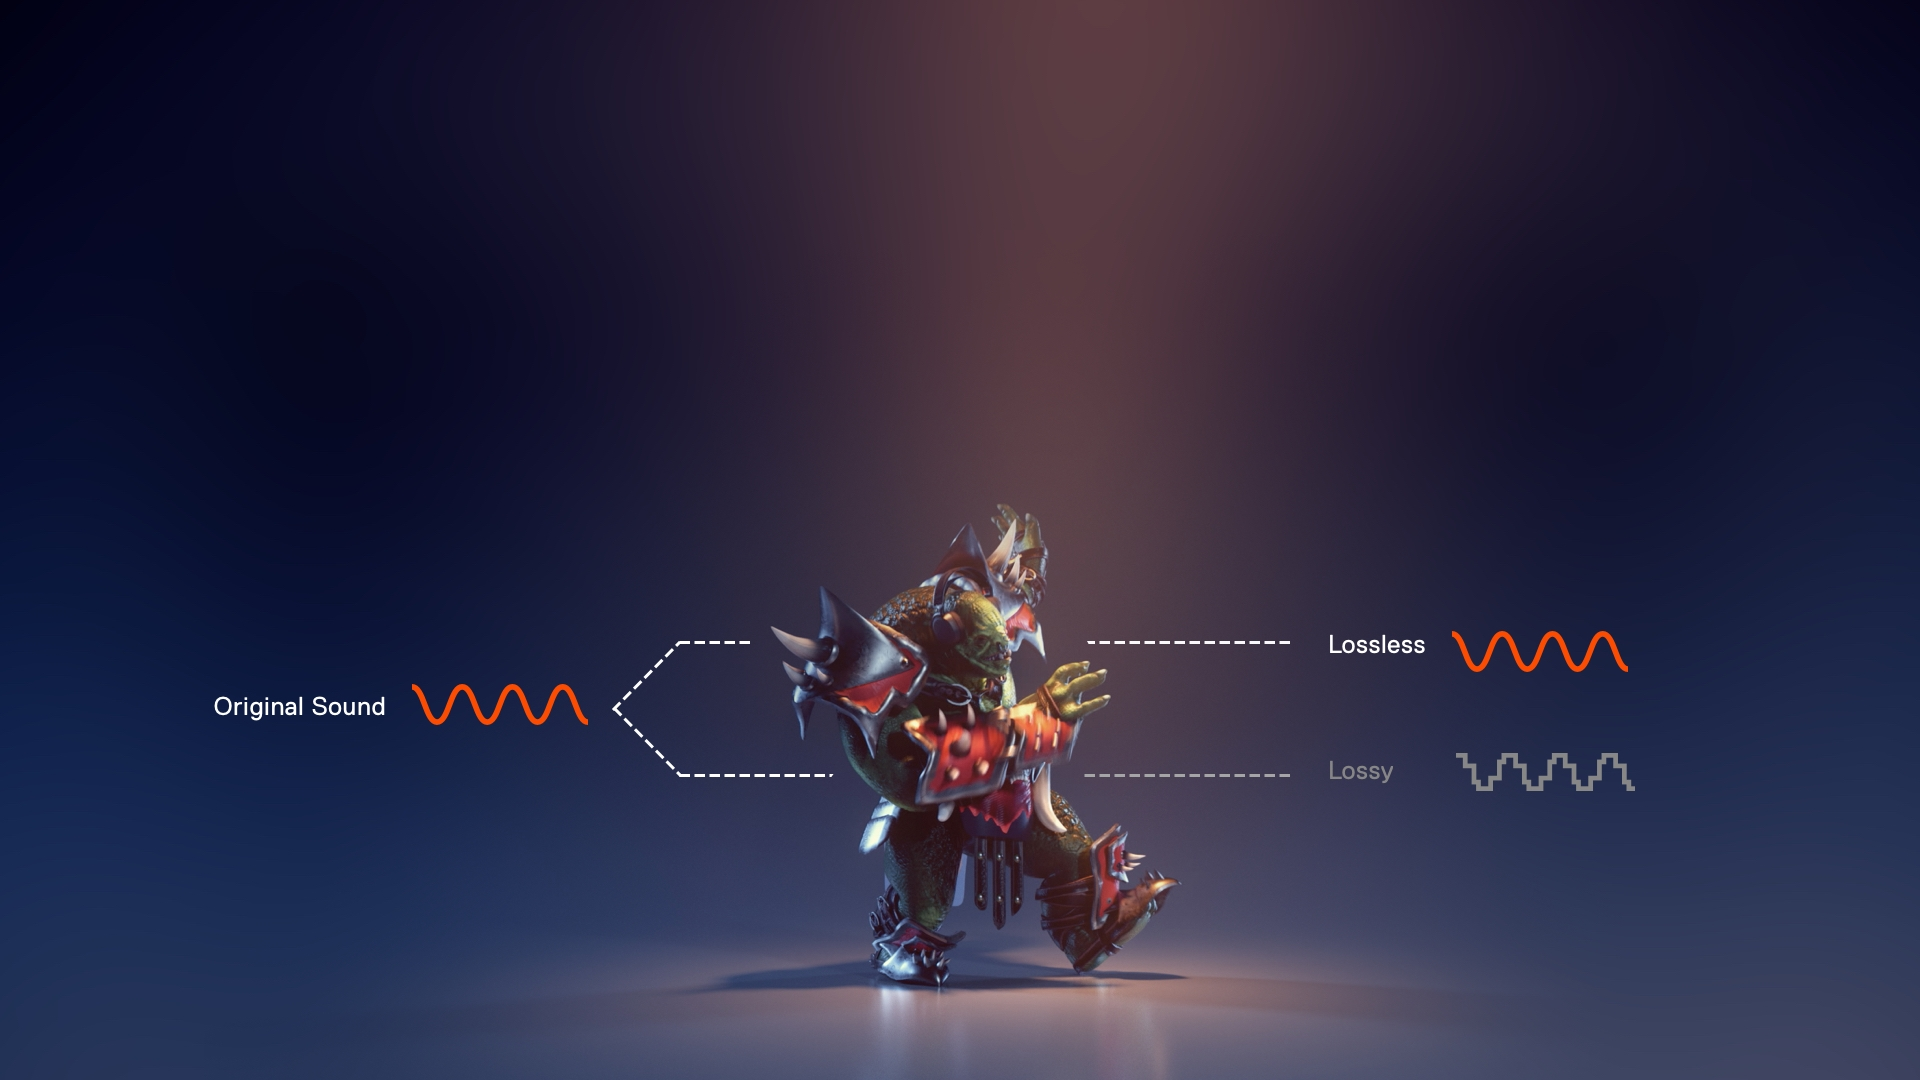 An orc warrior covered in armor walking to the right next to graphics and text that show original sound moving to lossless as opposed to lossy sound quality